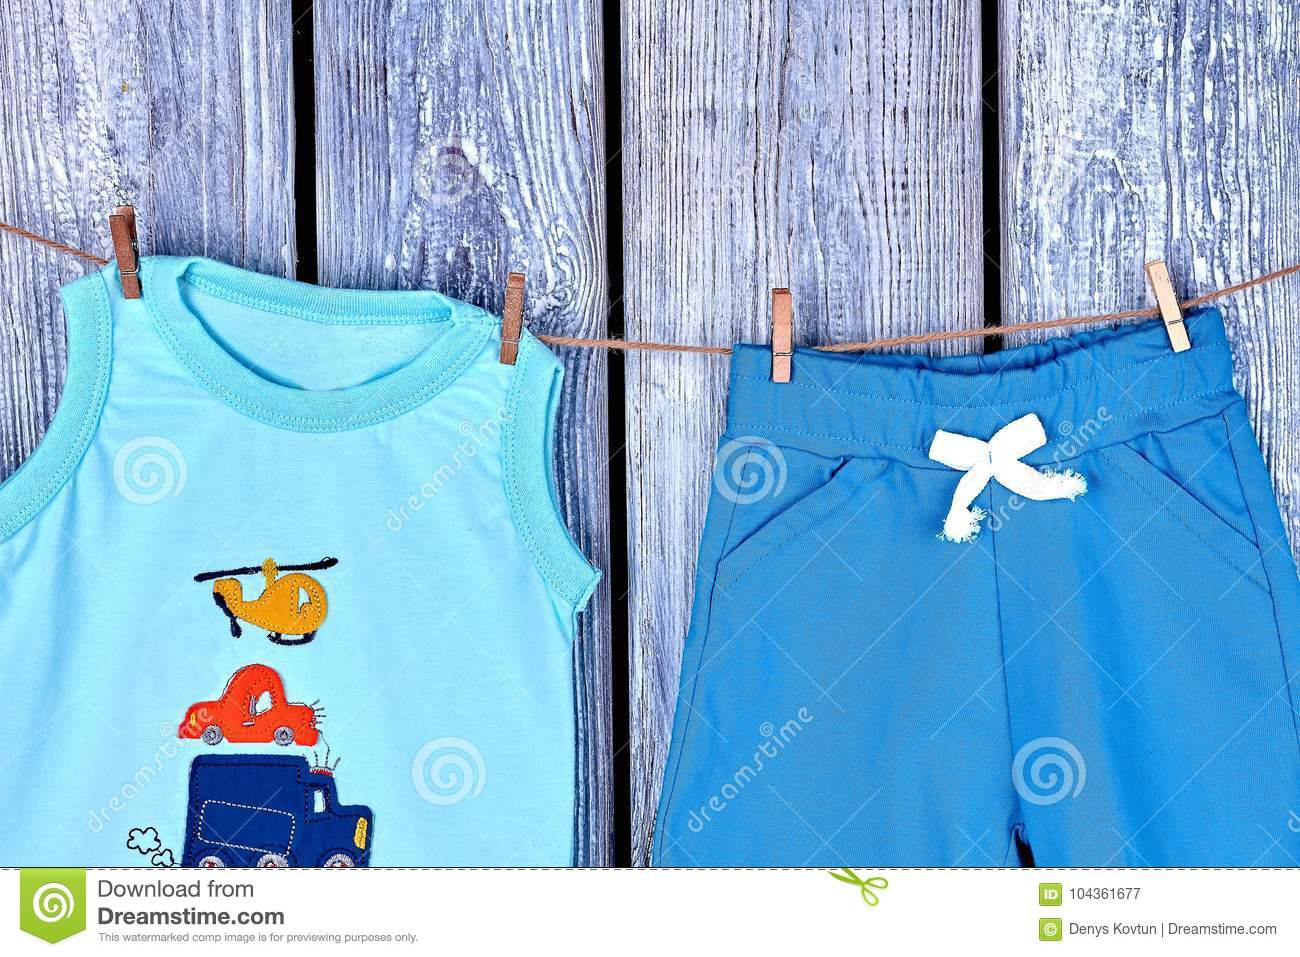 532b611d0 Children Clothes Hanging On Rope. Stock Image - Image of grey, clean ...